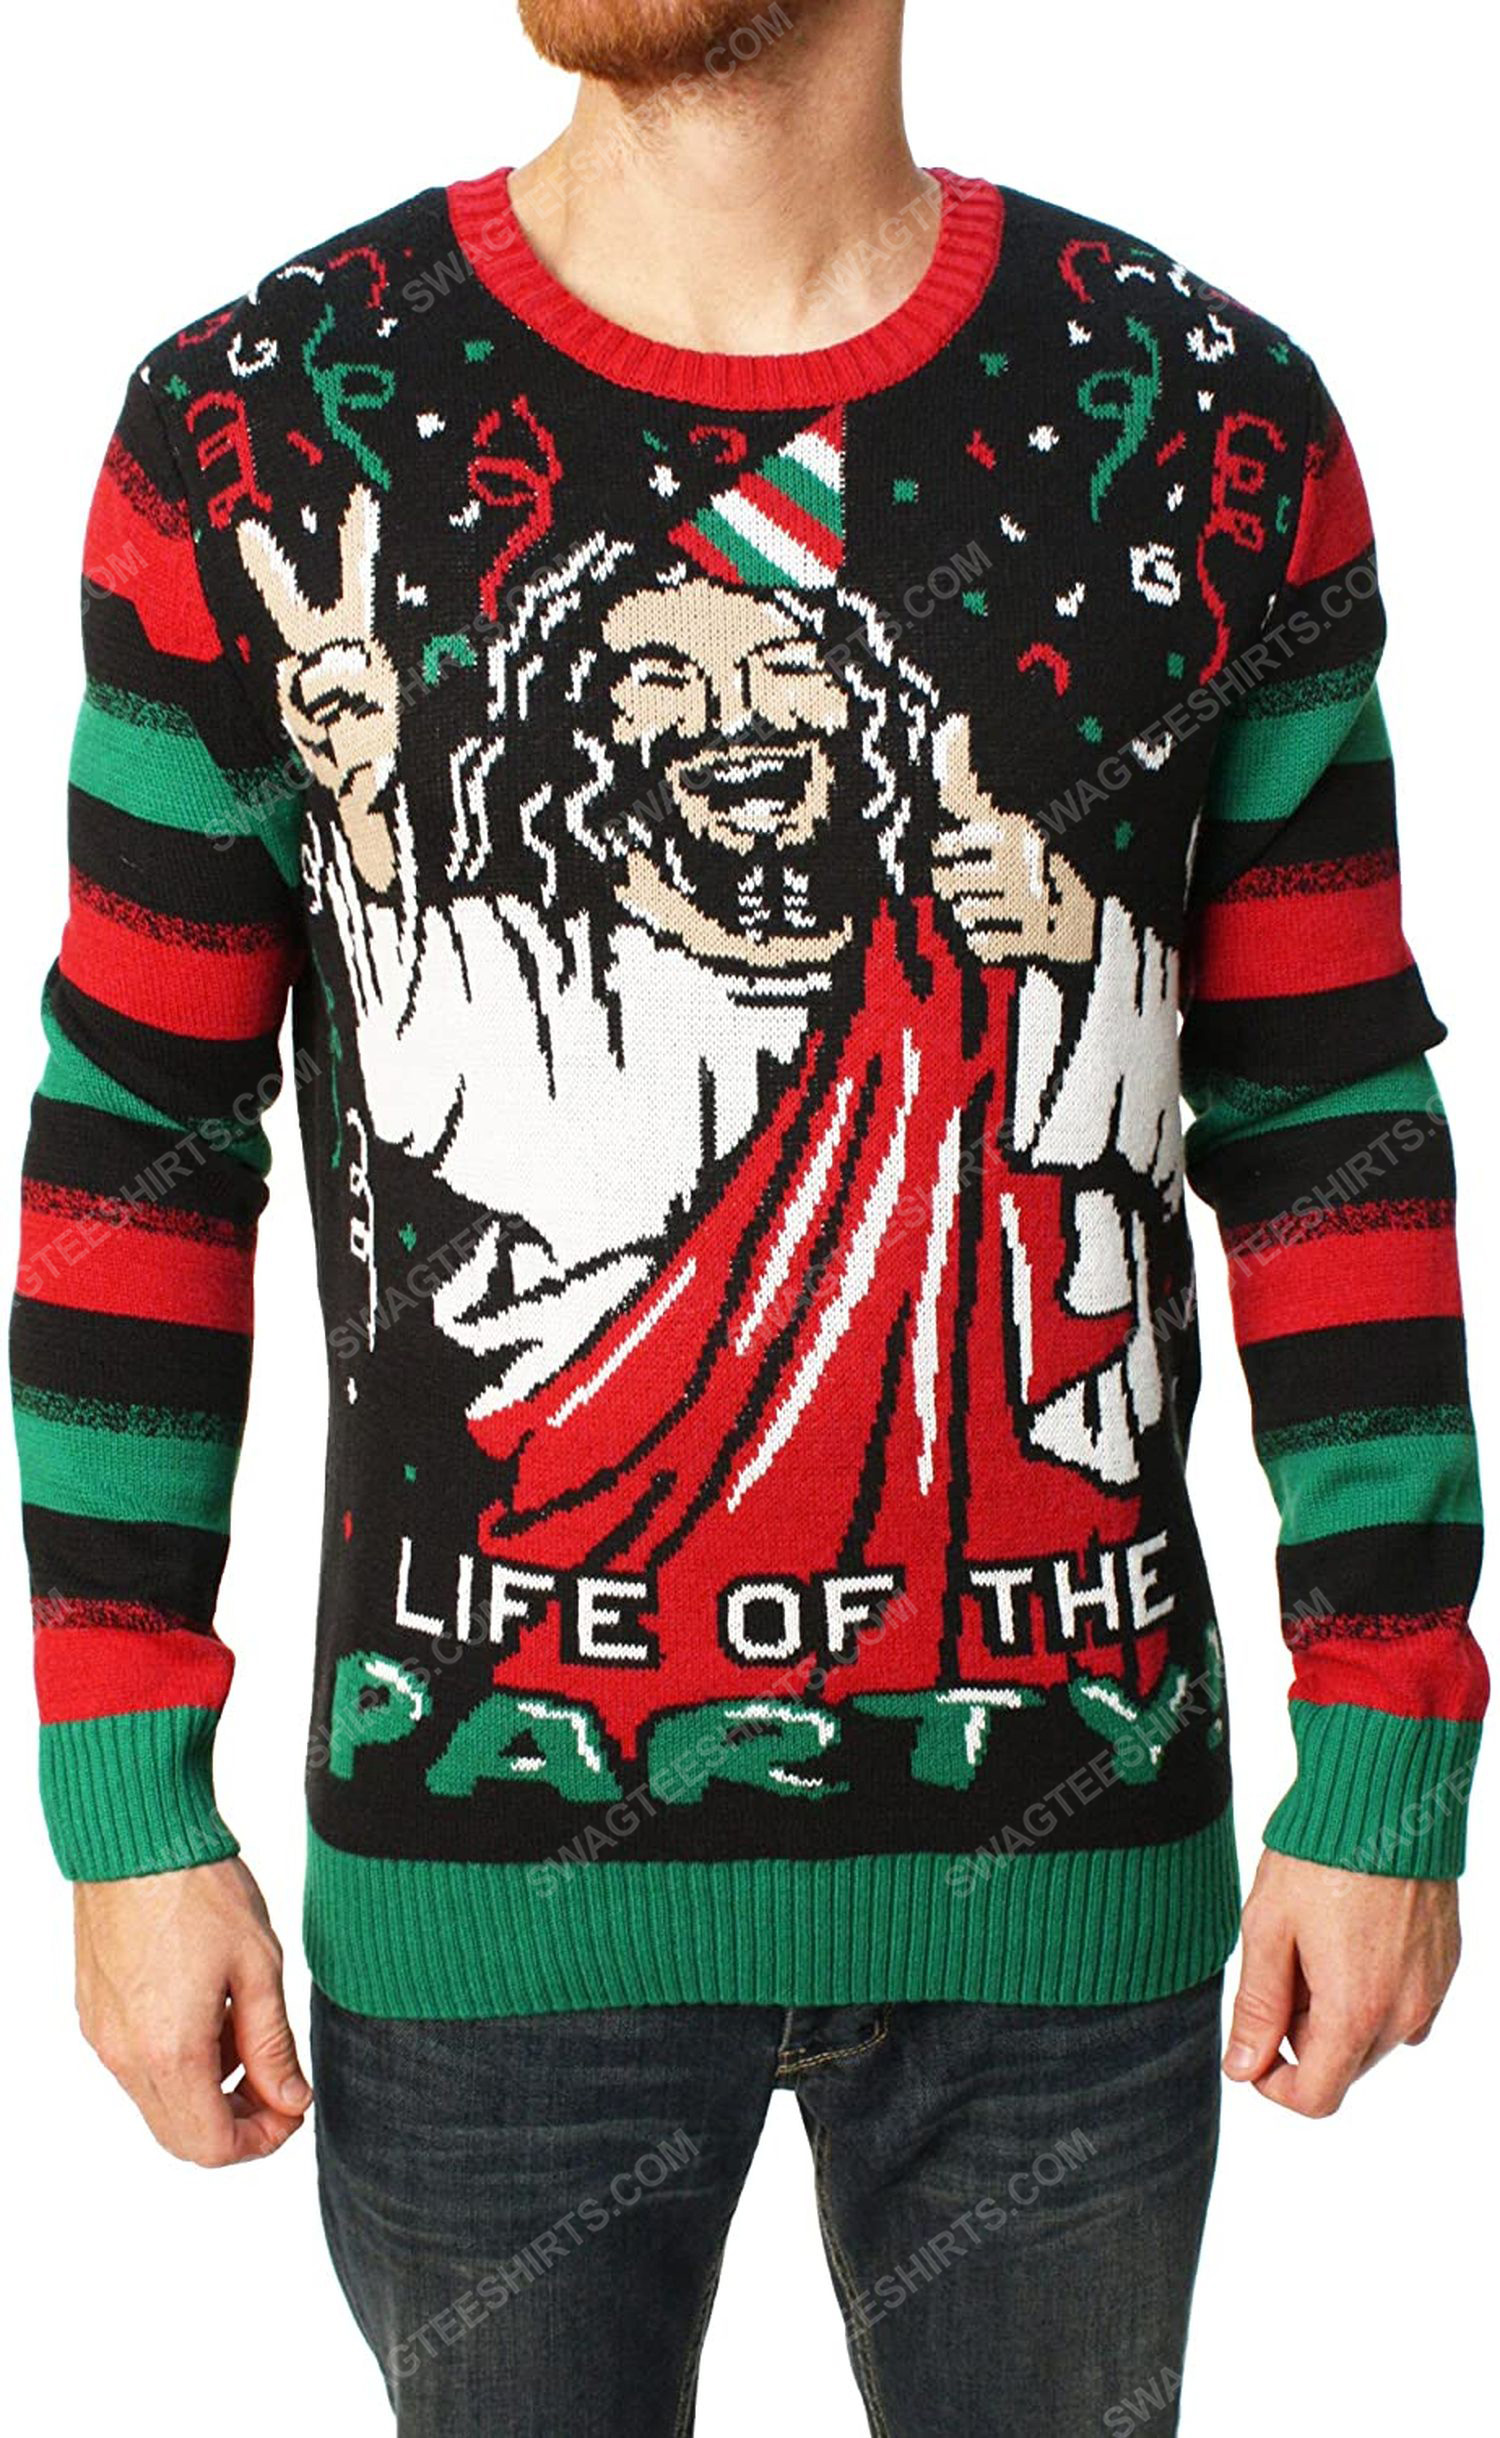 Life of the party full print ugly christmas sweater 2